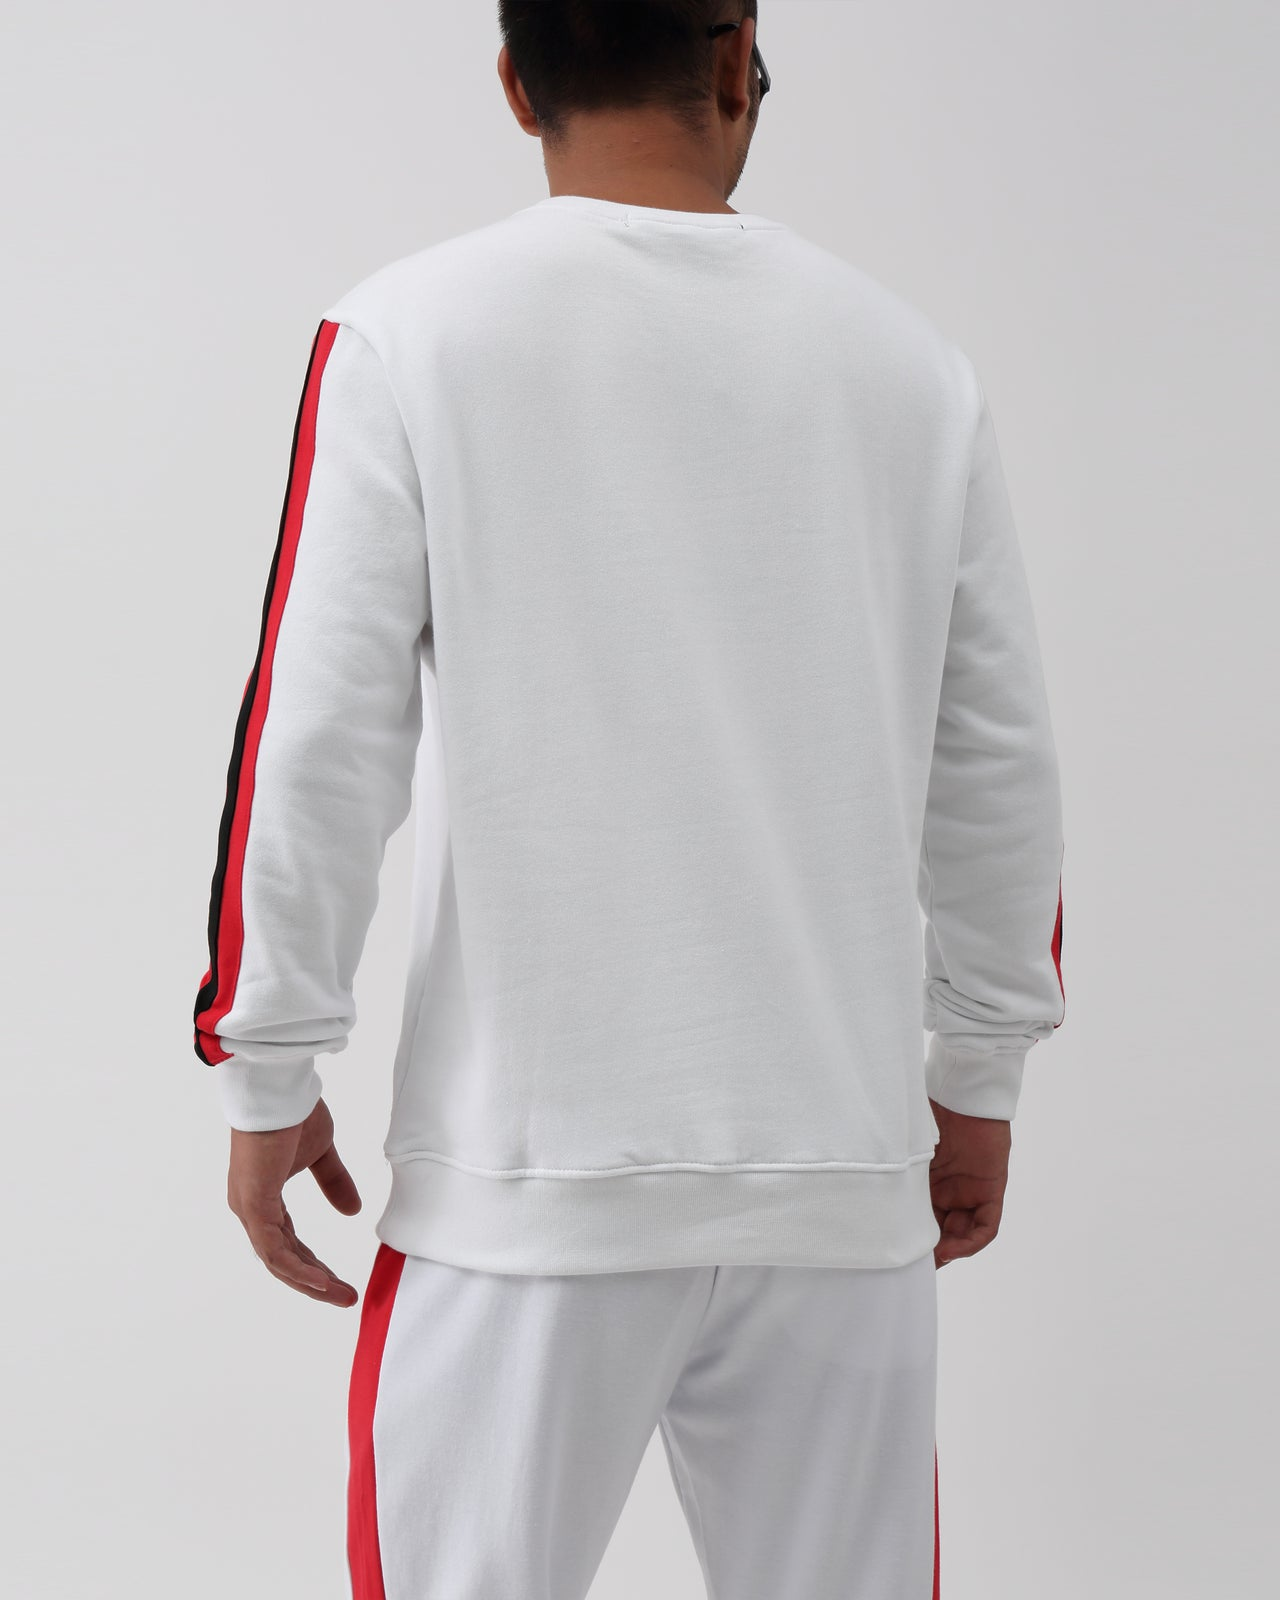 The Meatball Future Classic Crew Sweatshirt - Color: White | White